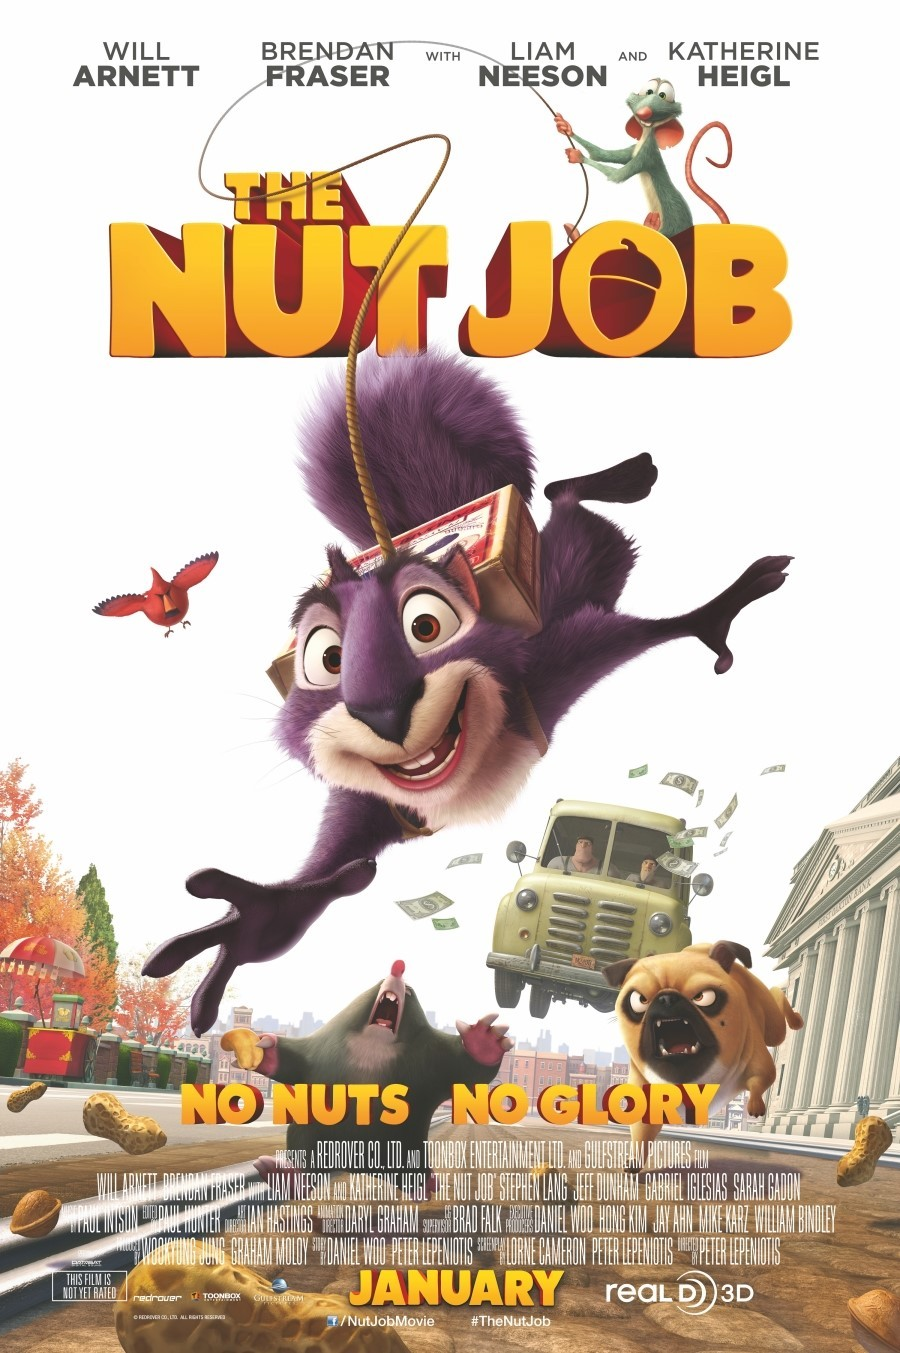 The Nut Job-Official Poster Banner PROMO POSTER XLG-16DEZEMBRO2013